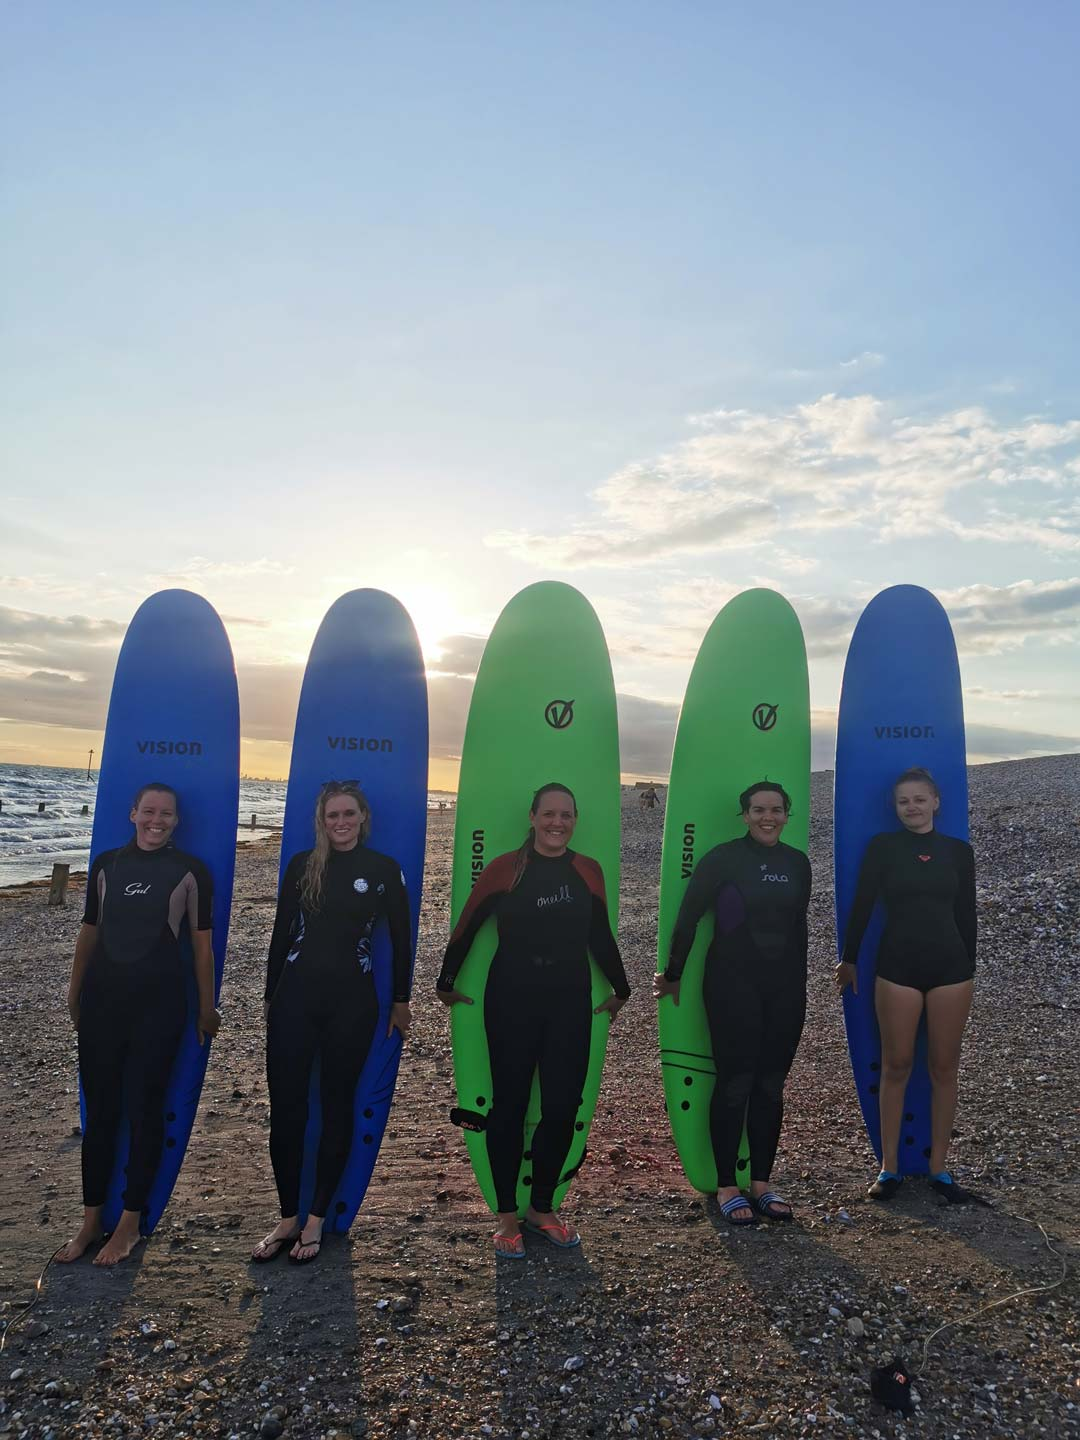 group of surfers with surf boards